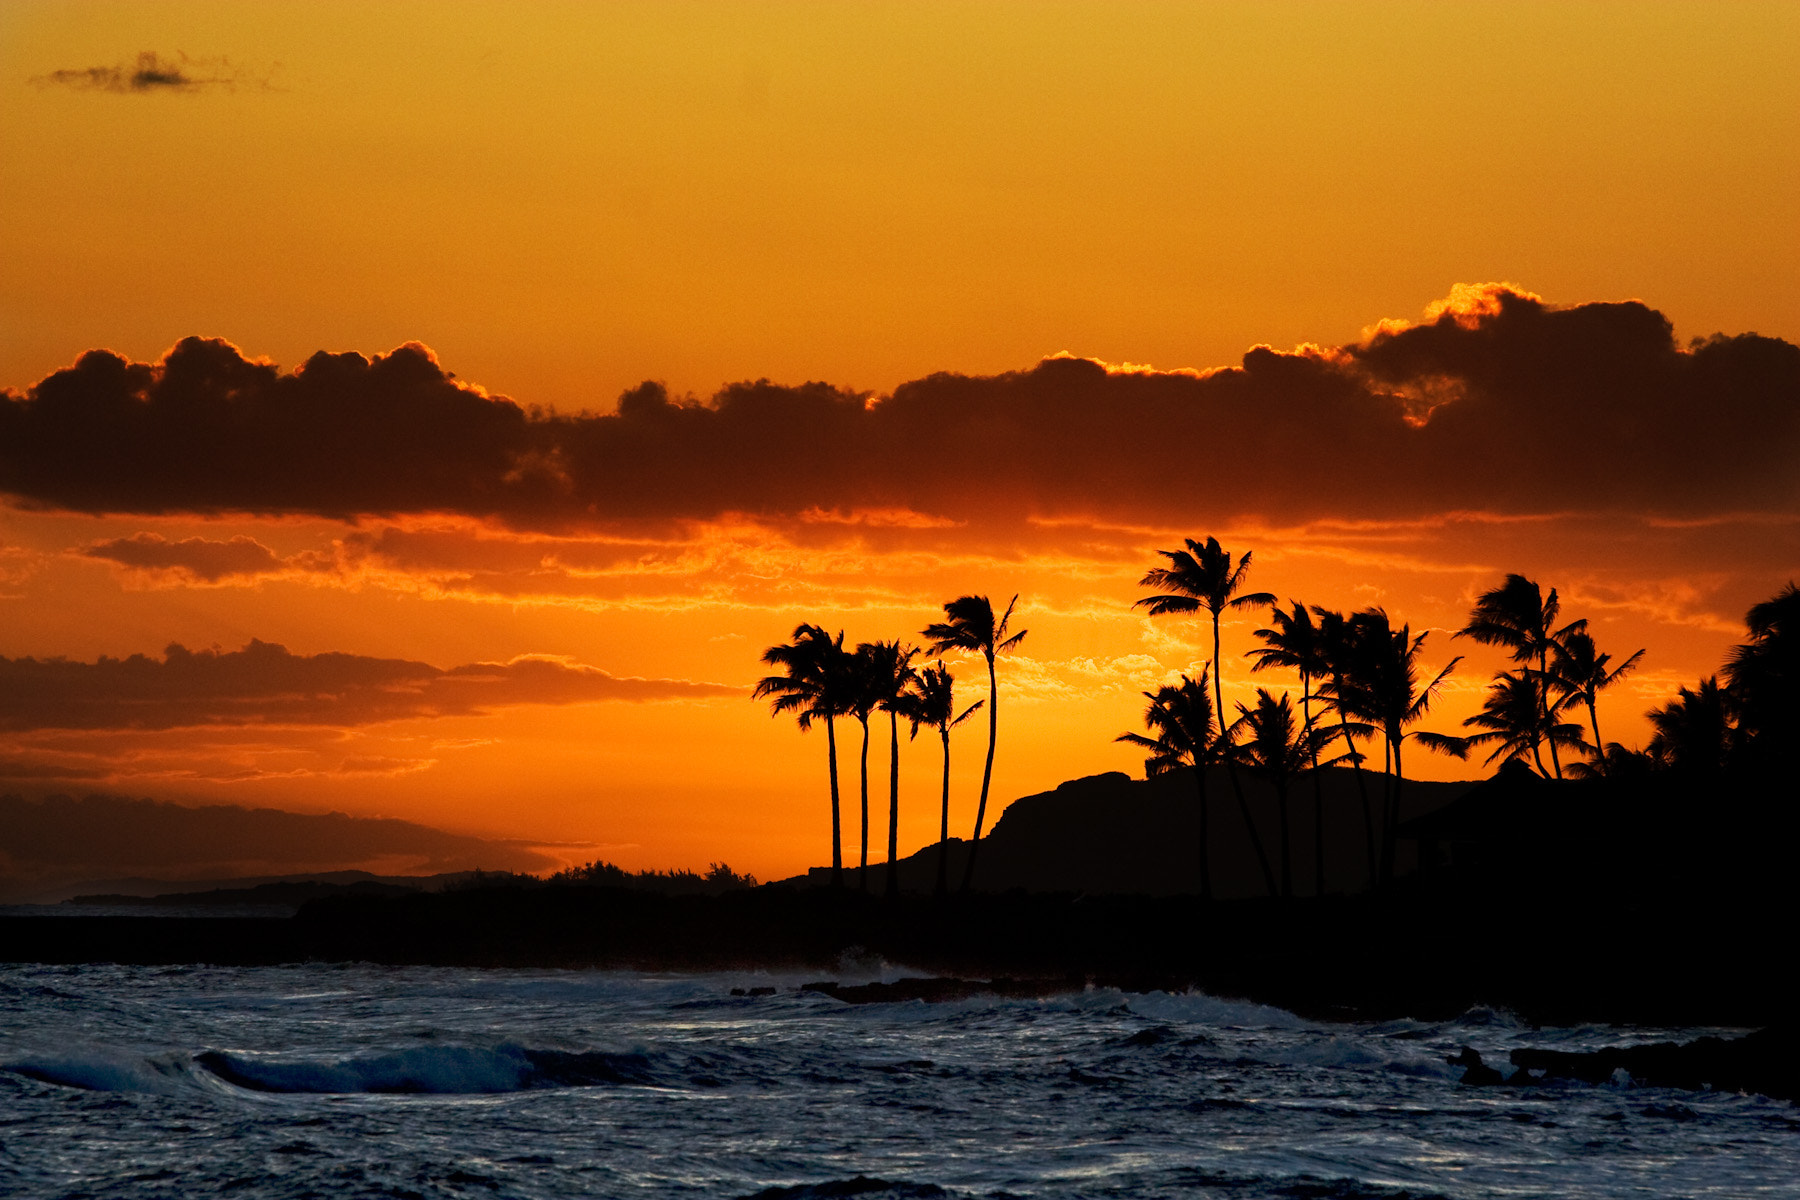 Photograph Kauai Sunset by Mike Wong on 500px